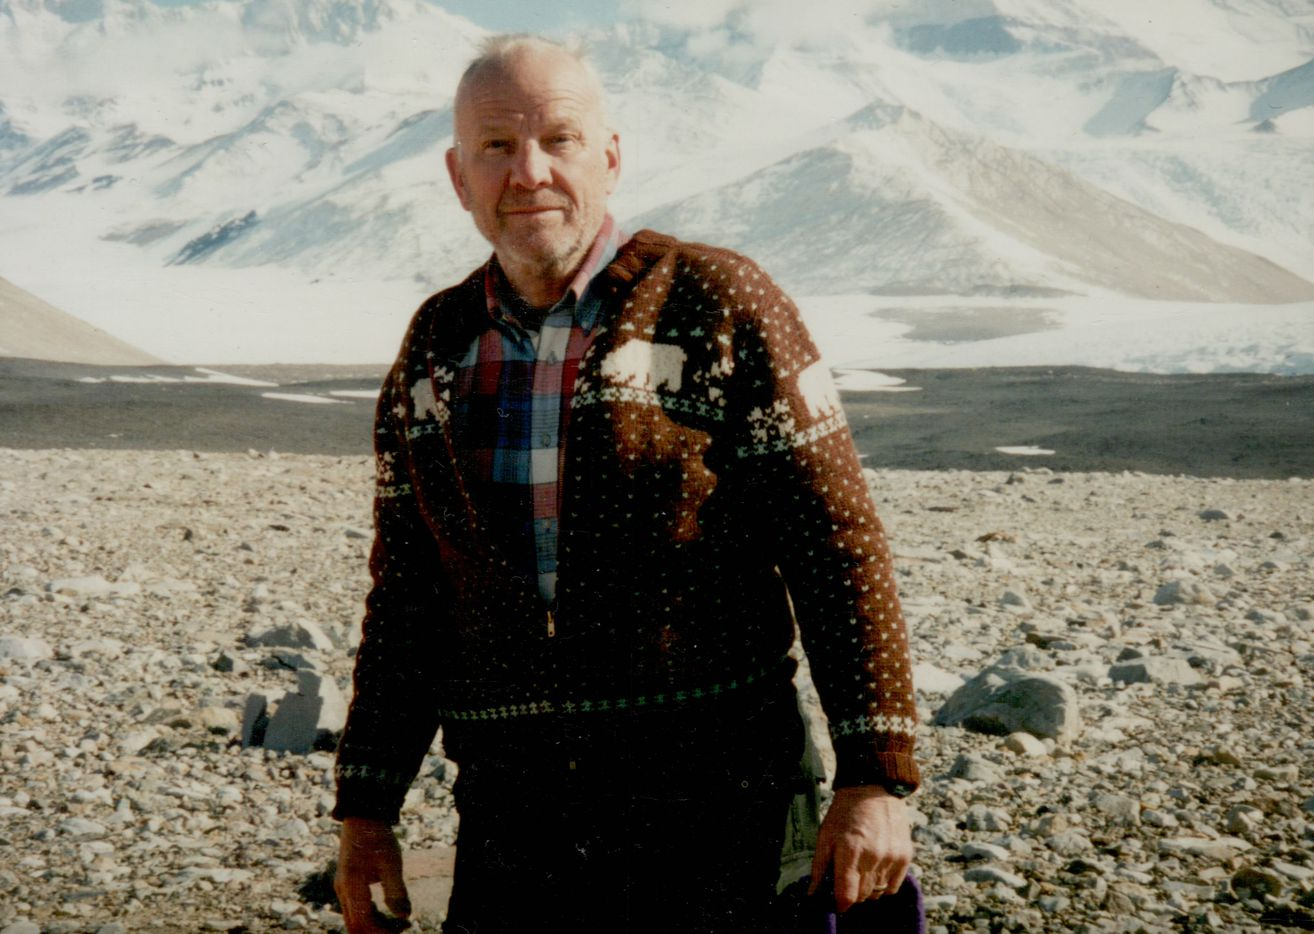 Robert H. Rutford, a former president of the University of Texas at Dallas, was a longtime polar explorer in Antarctica. The geologist visited the continent at least 30 times and has a mountain named after him there. Rutford passed away Dec. 1, 2019. He was 86.